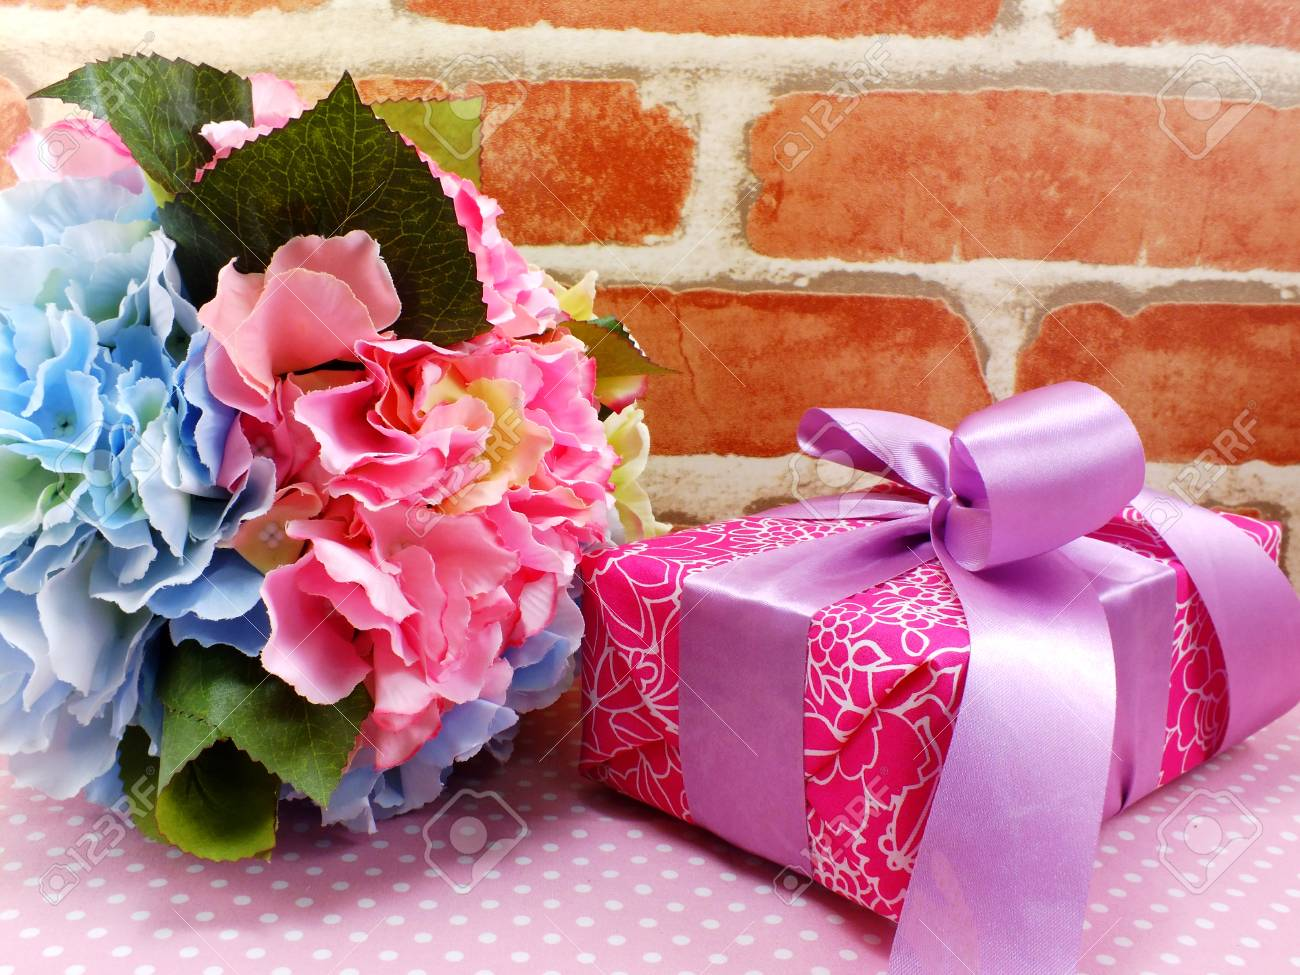 Gift box present with pink ribbon bow and beautiful flowers gift box present with pink ribbon bow and beautiful flowers background stock photo 61598678 izmirmasajfo